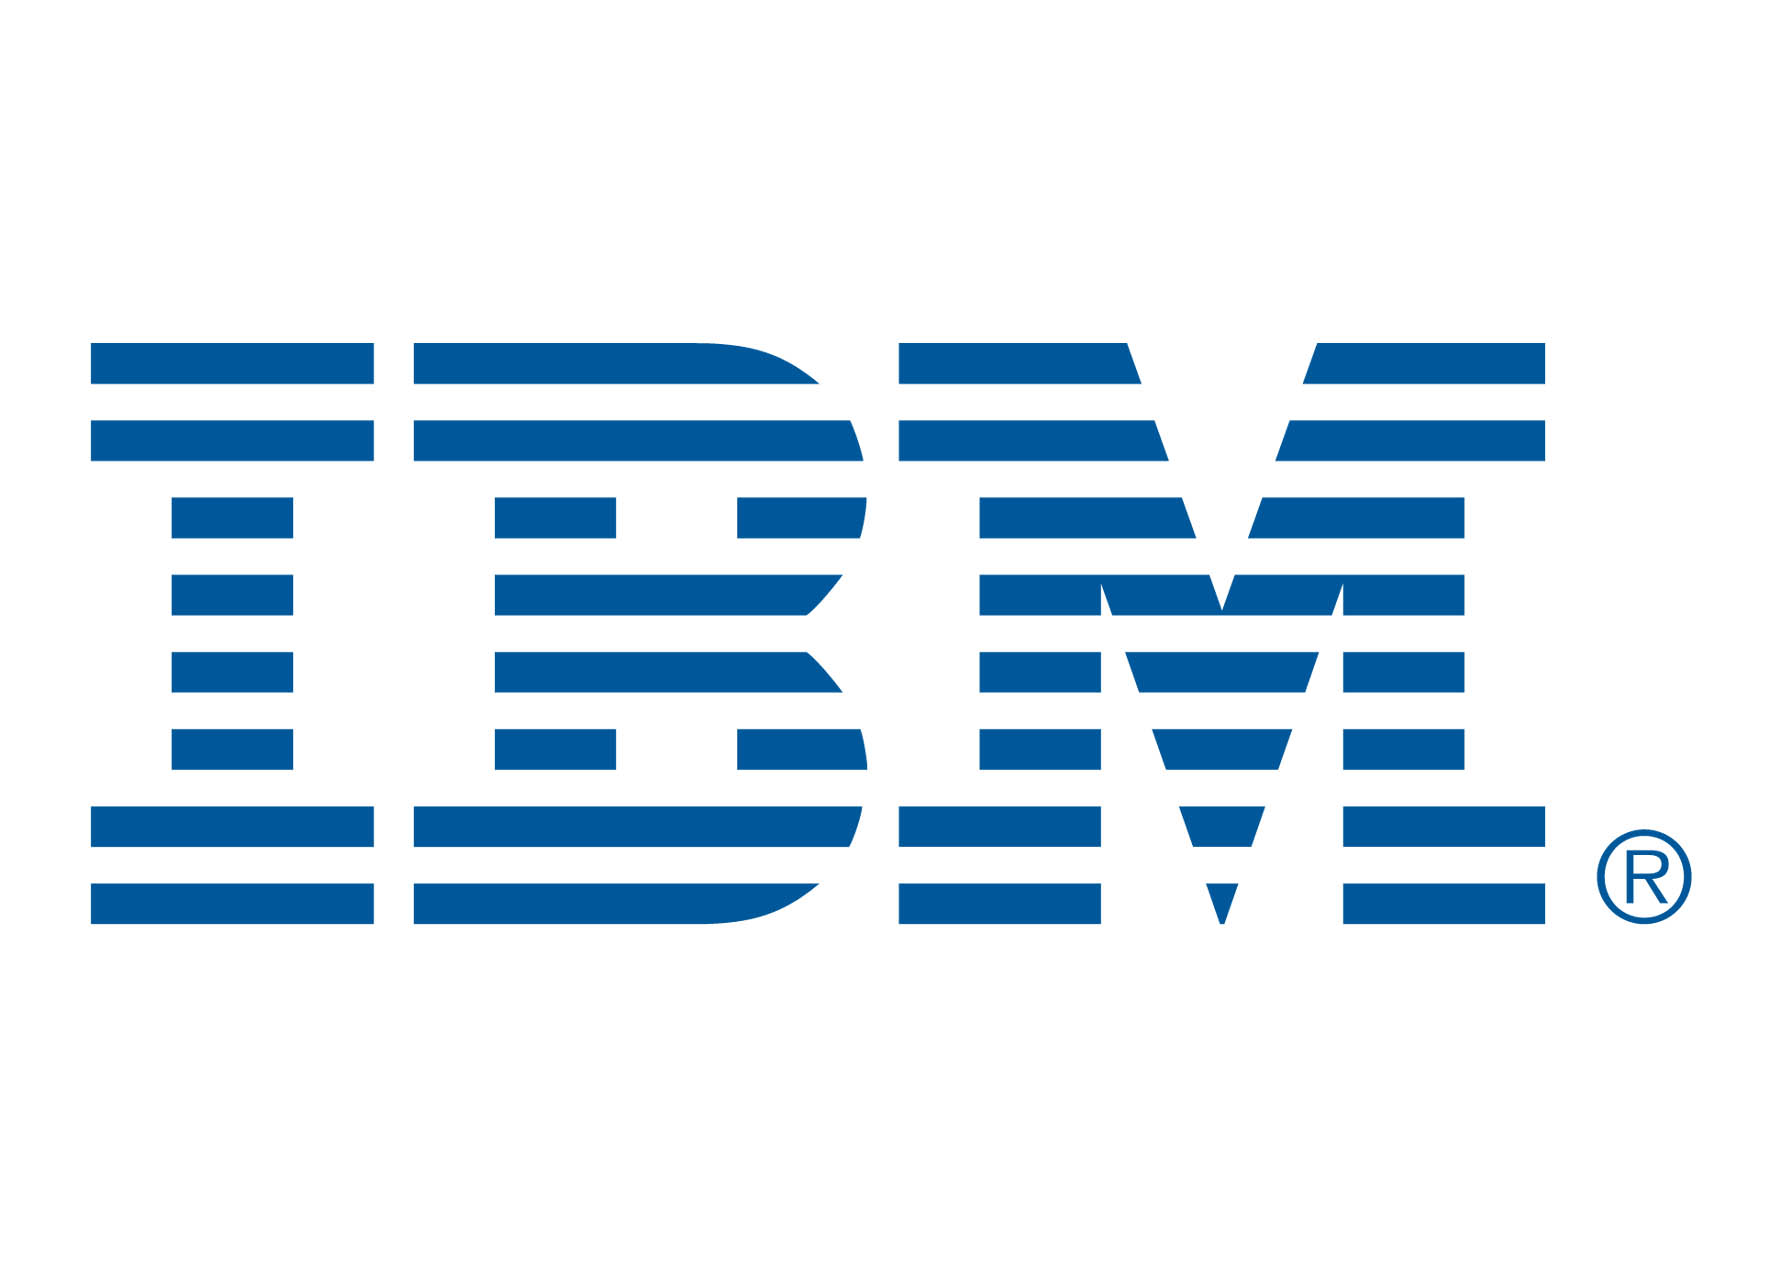 Ibm positioning statement